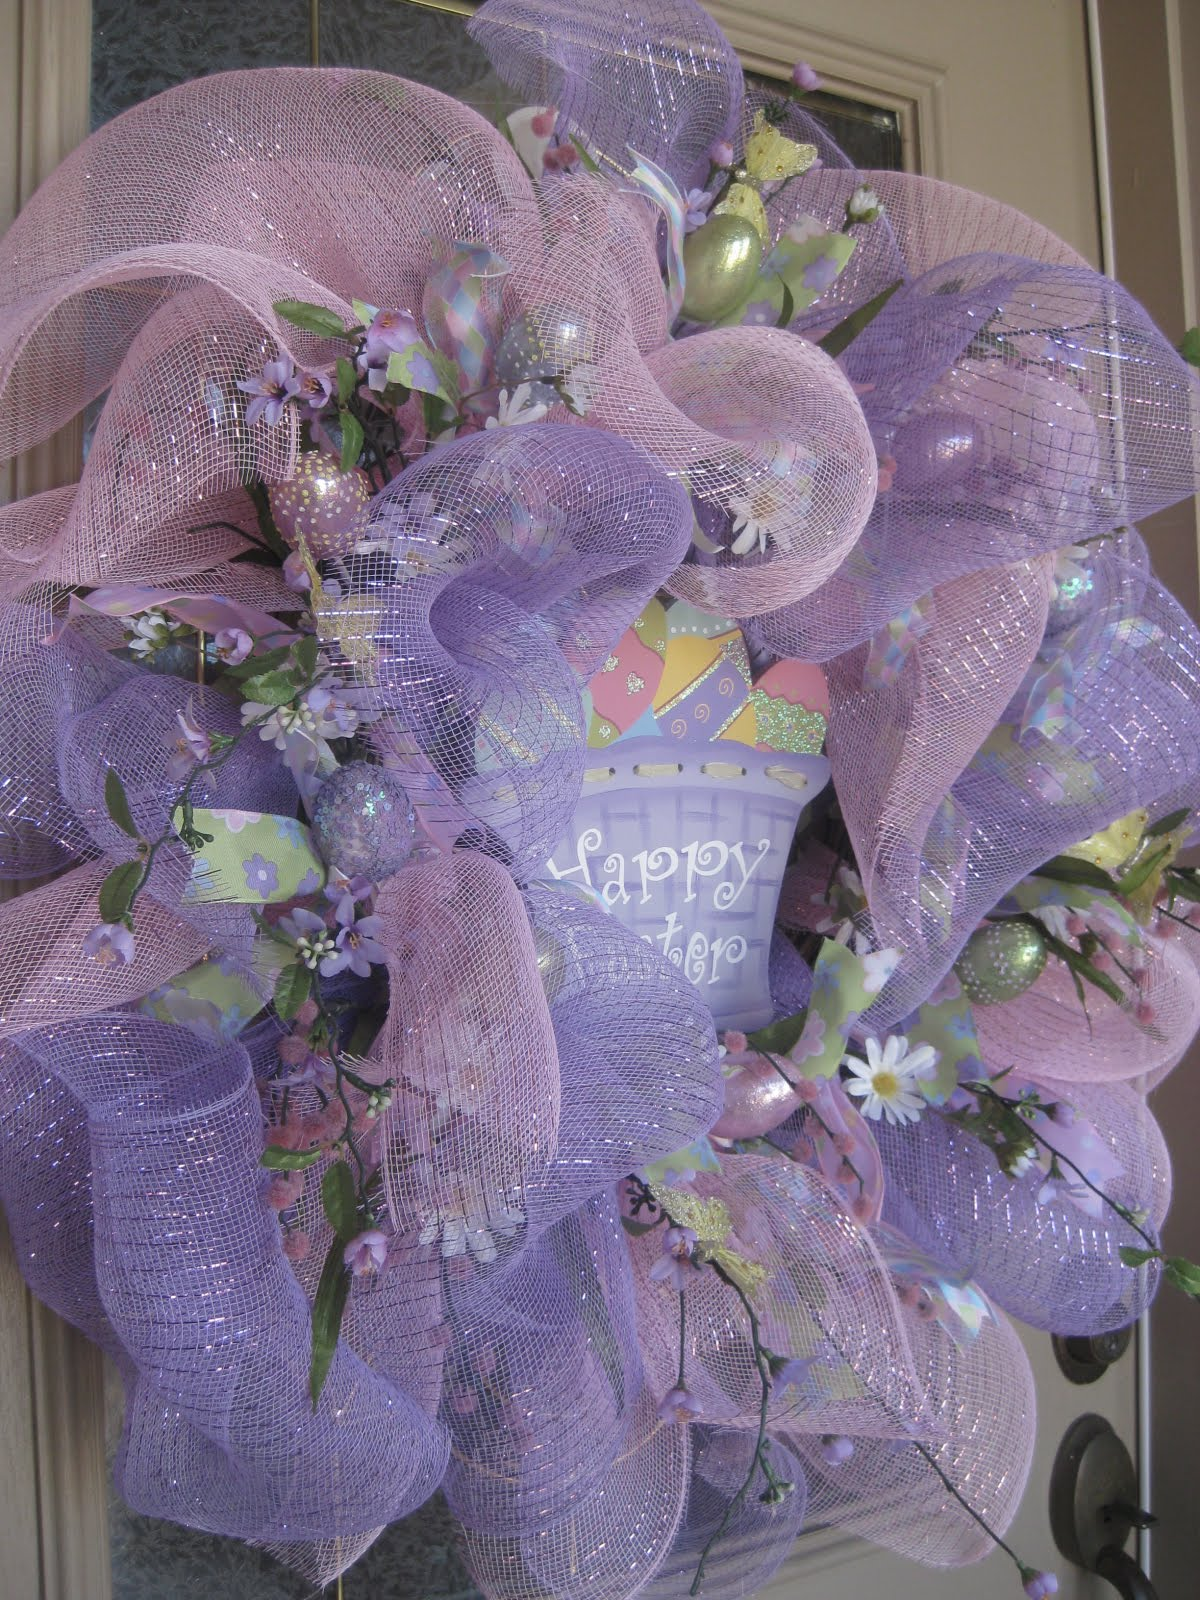 Geo Mesh Wreath Ideas http://kristenscreationsonline.blogspot.com/2011/03/easter-mesh-wreath-tutorial.html